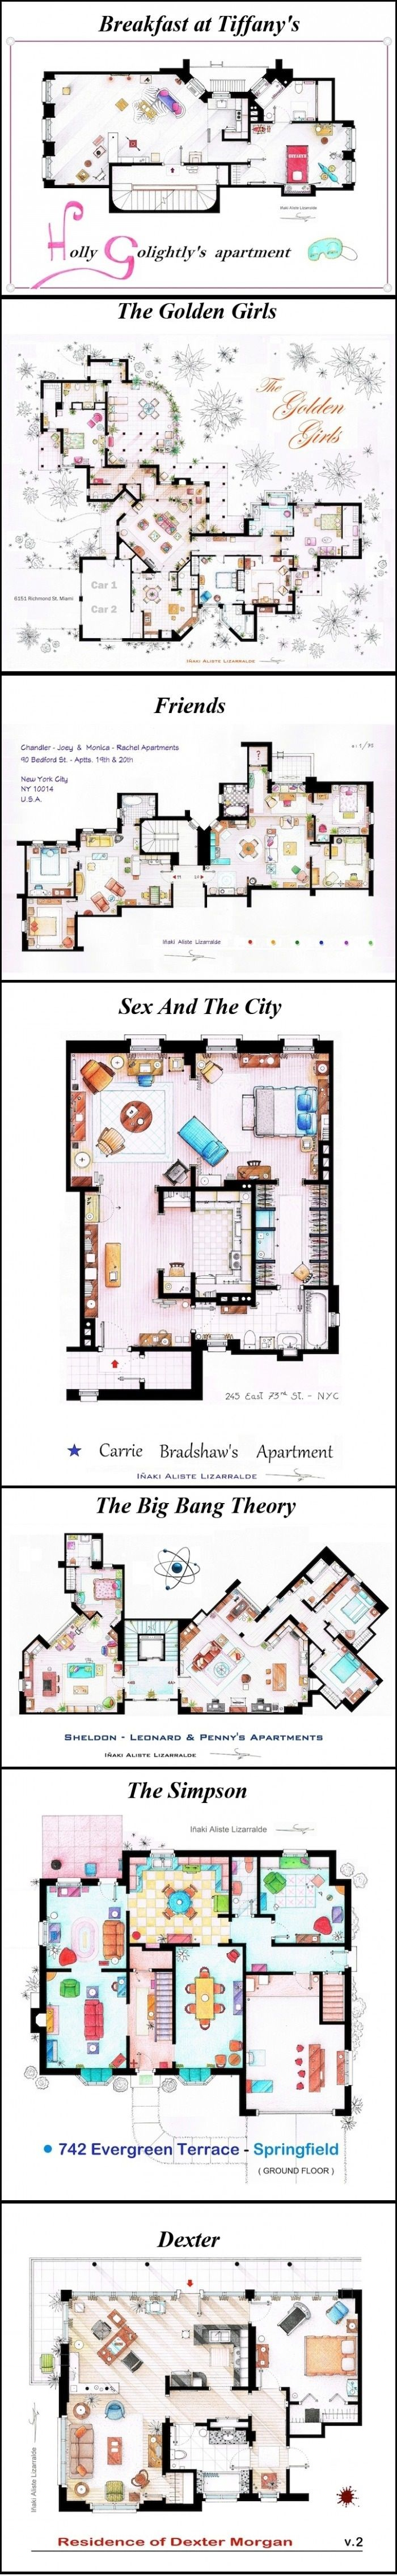 25 best hotel plan images on pinterest architecture apartment floorplans from tv shows